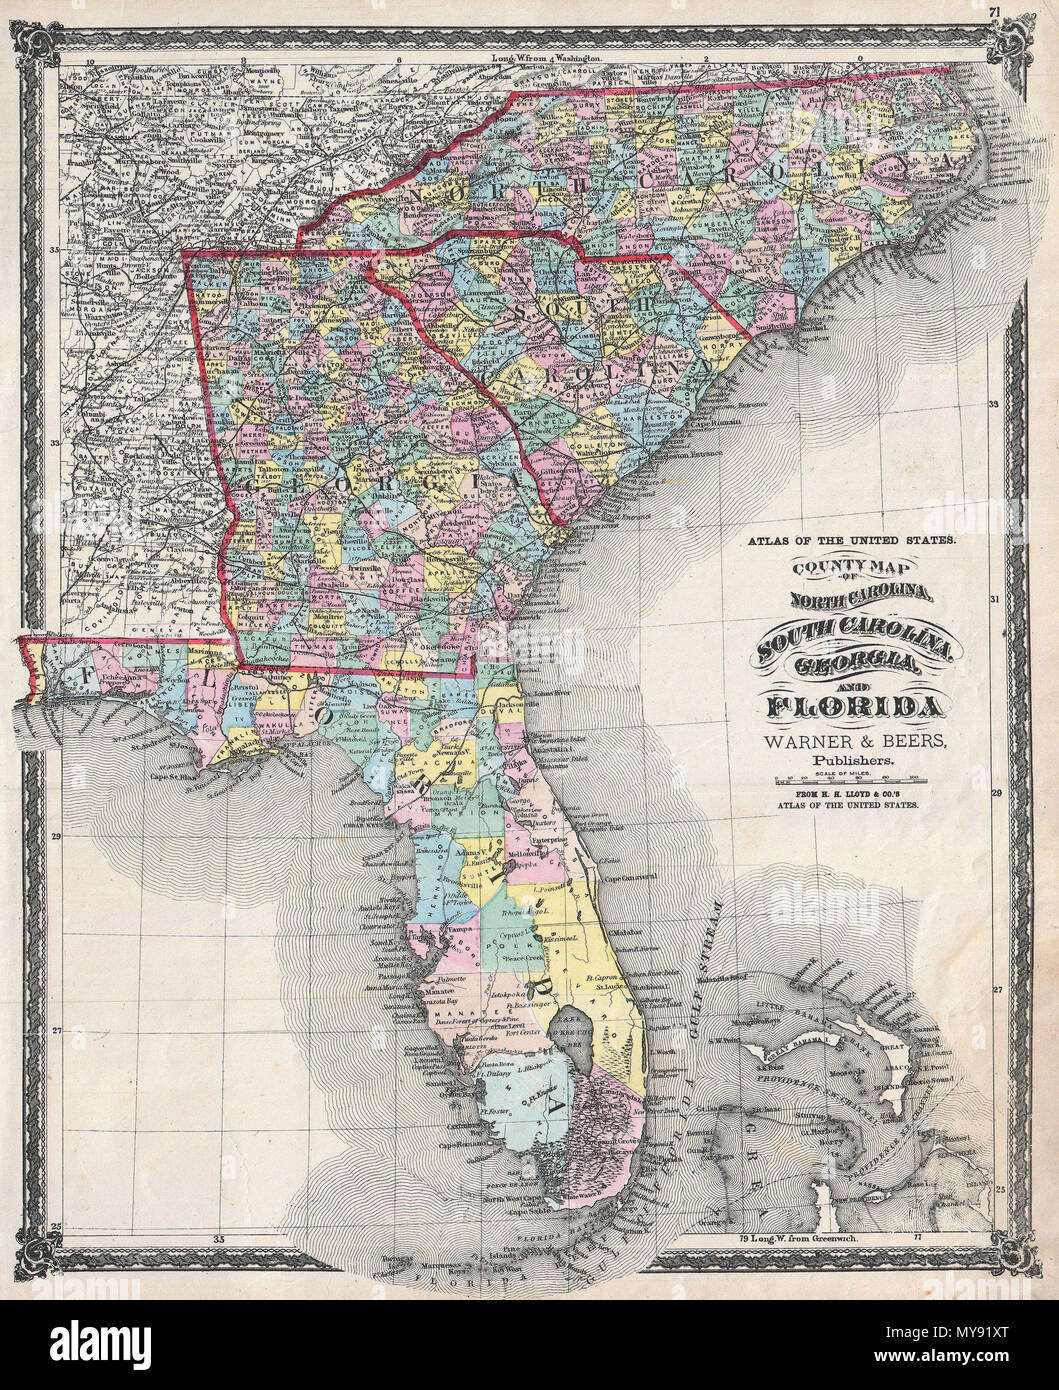 County Map Of North Carolina South Carolina Georgia And Florida